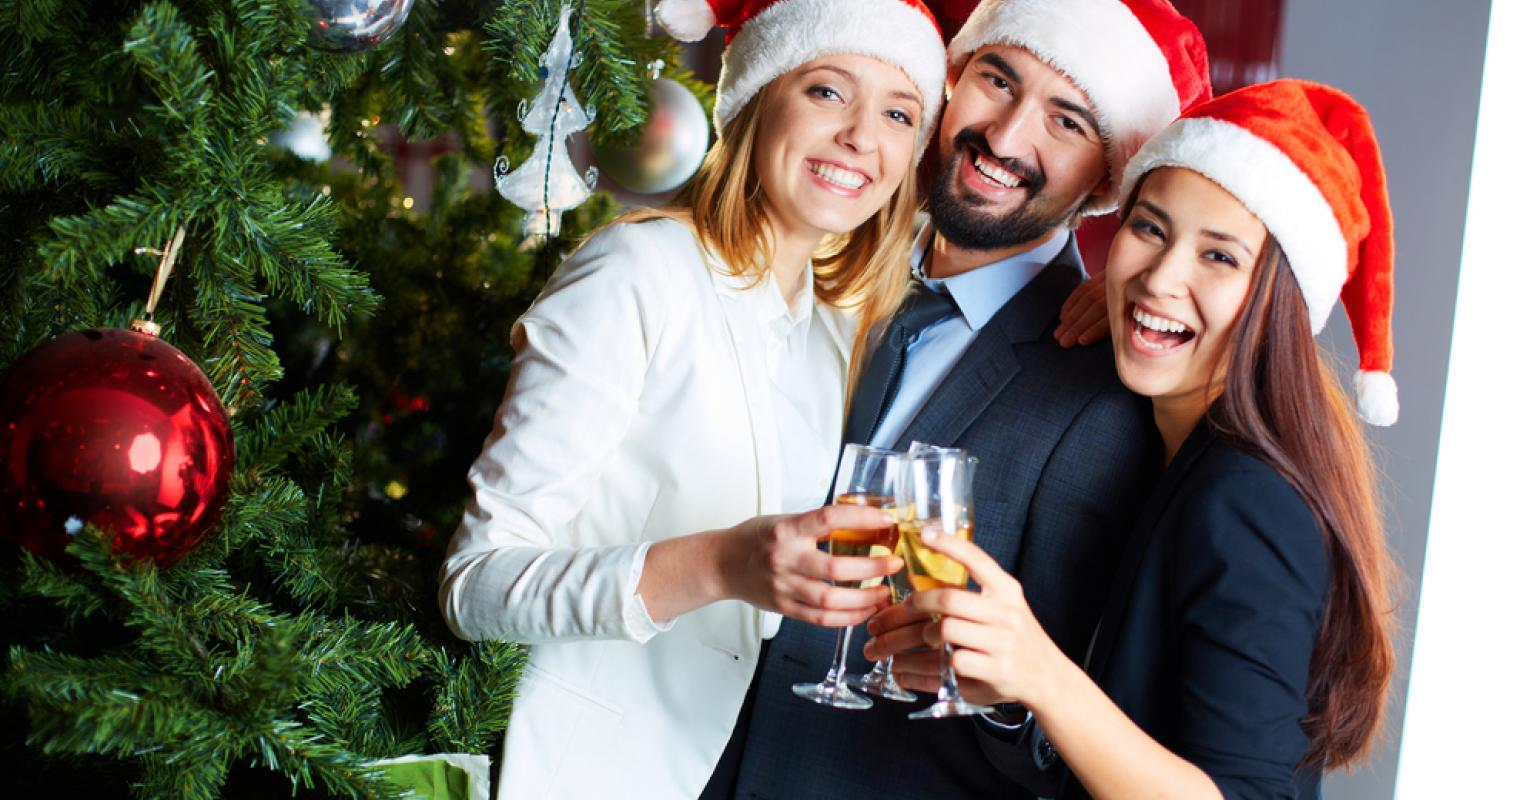 Christmas dress code - Dress Code For Office Christmas Party Wearings